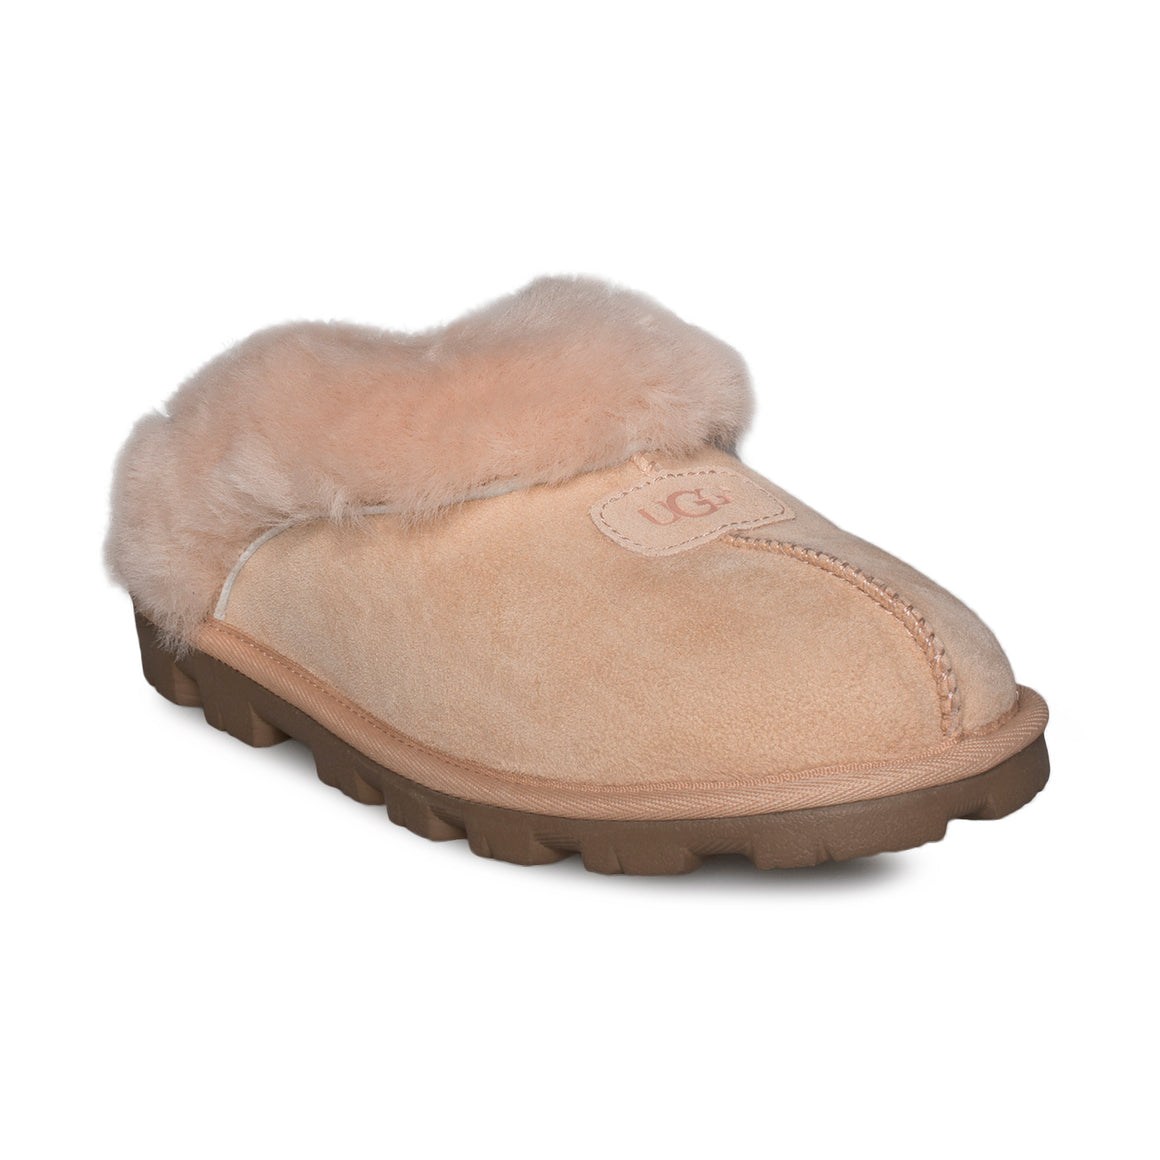 UGG Coquette Amberlight Slippers - Women's